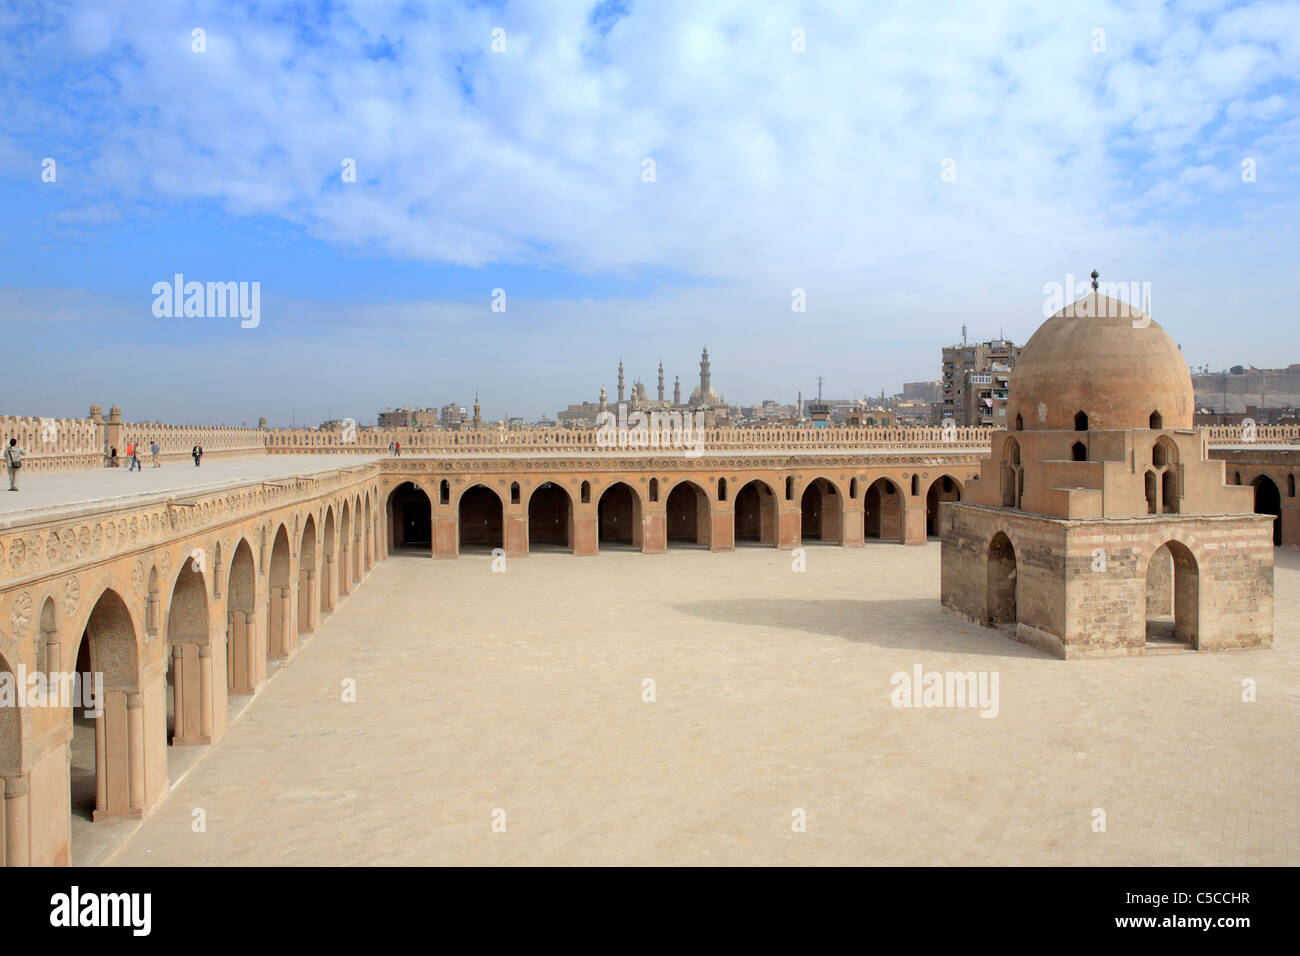 La mosquée Ibn Tulun (879), Le Caire, Egypte Photo Stock